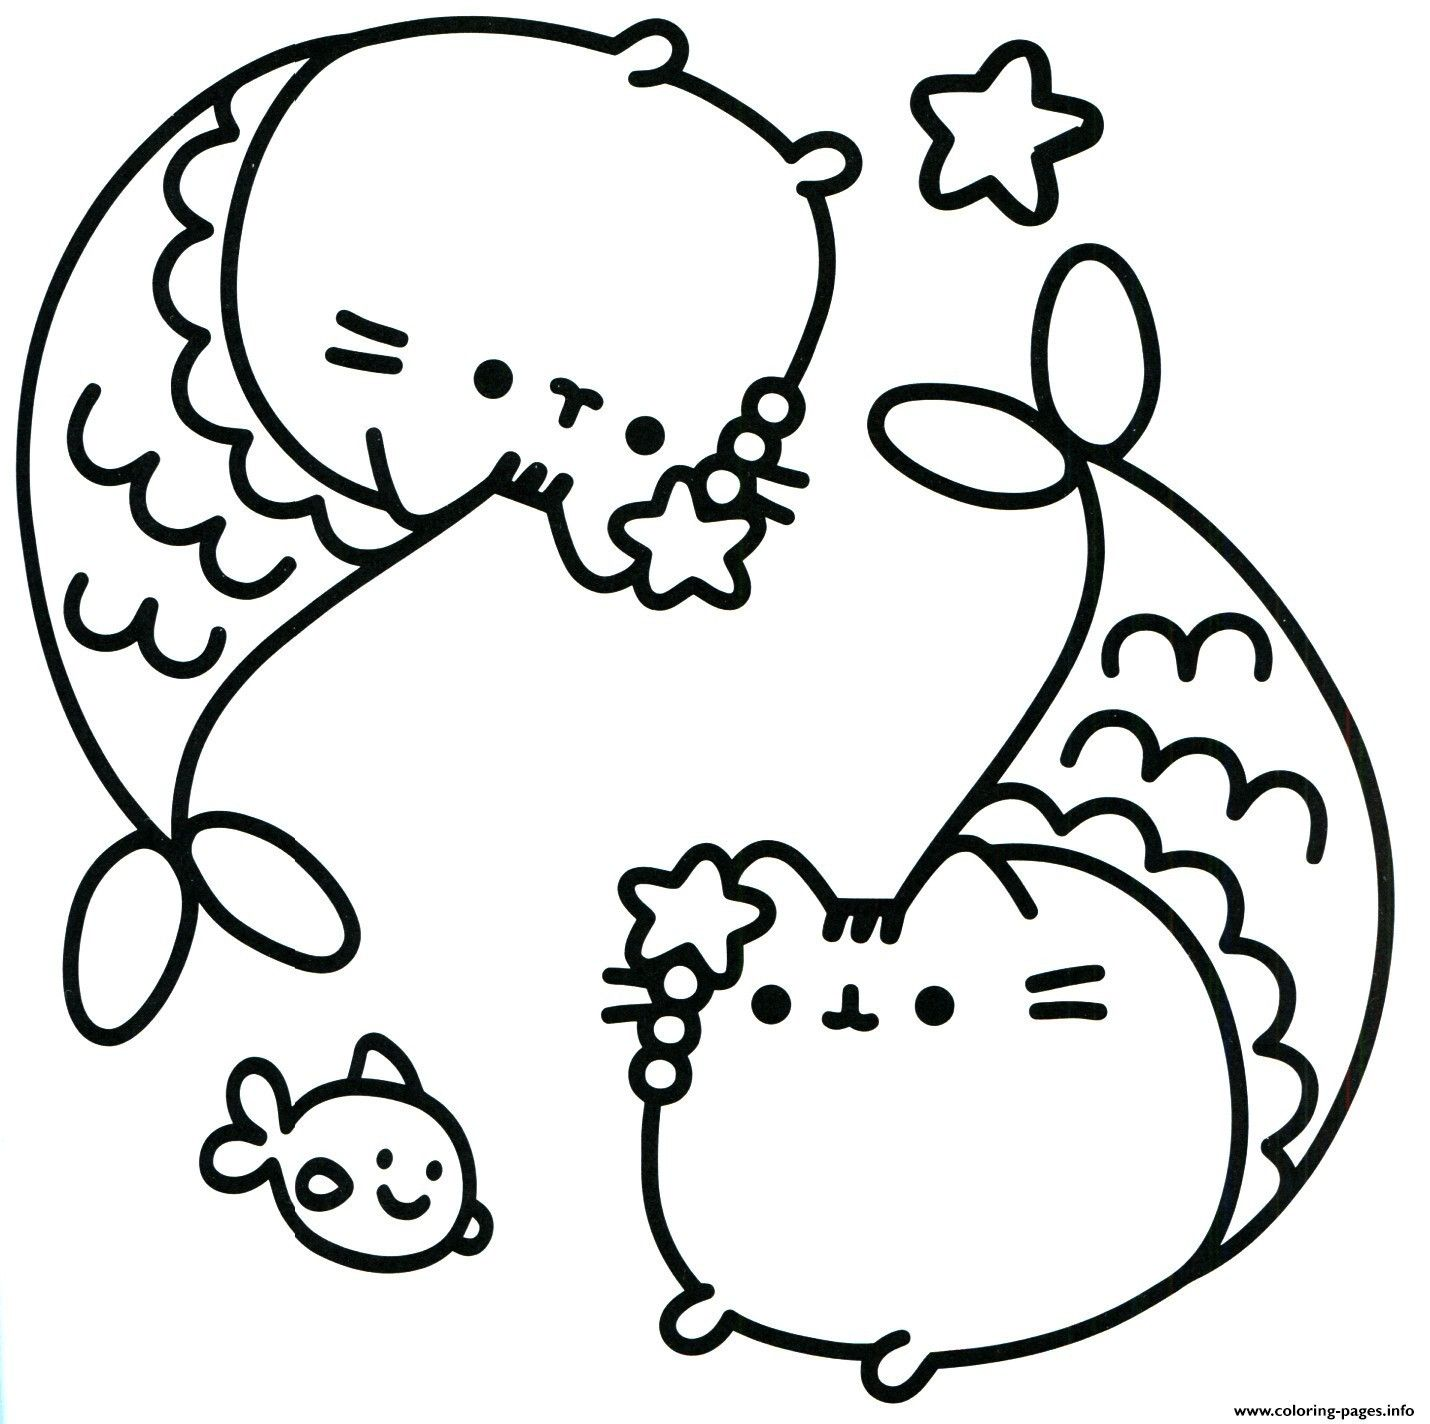 Printable Hello Kitty Mermaid Coloring Pages Perfect Coloring Pages Hello Kitty Merma Unicorn Coloring Pages Hello Kitty Colouring Pages Pusheen Coloring Pages